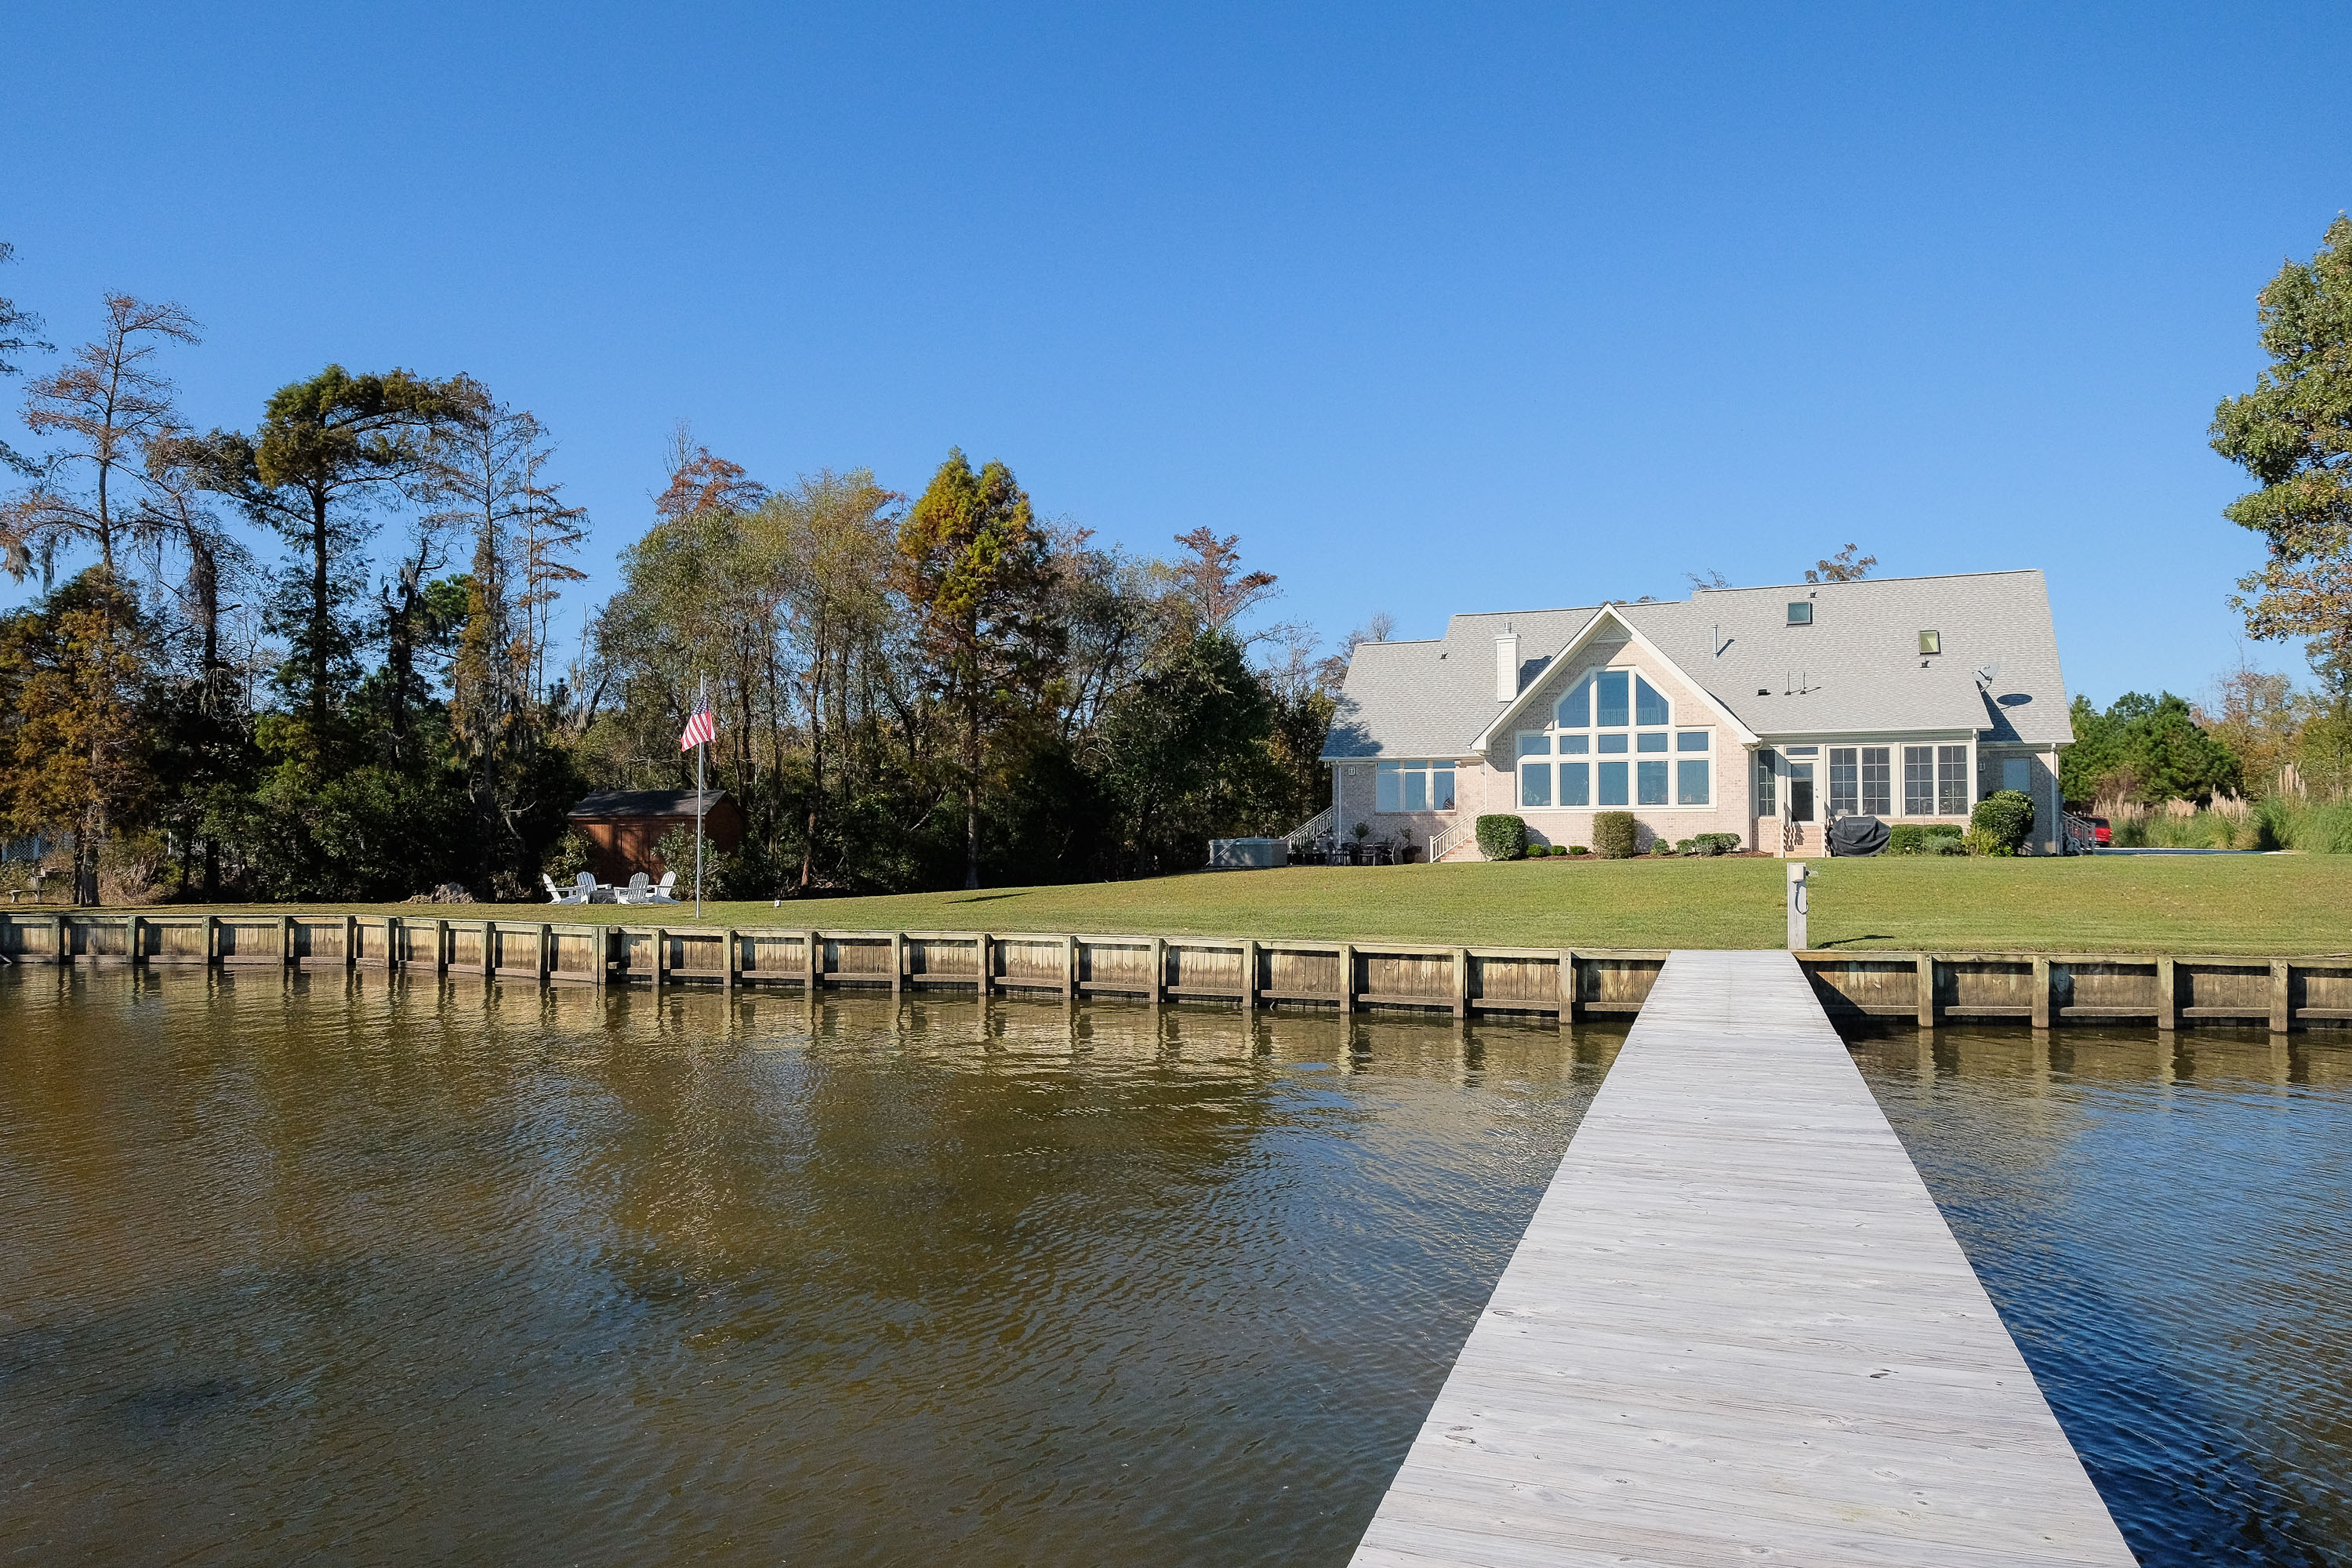 Single Family Home for Sale at Albemarle Shores Waterfront 140 Osprey Drive Edenton, North Carolina 27932 United States